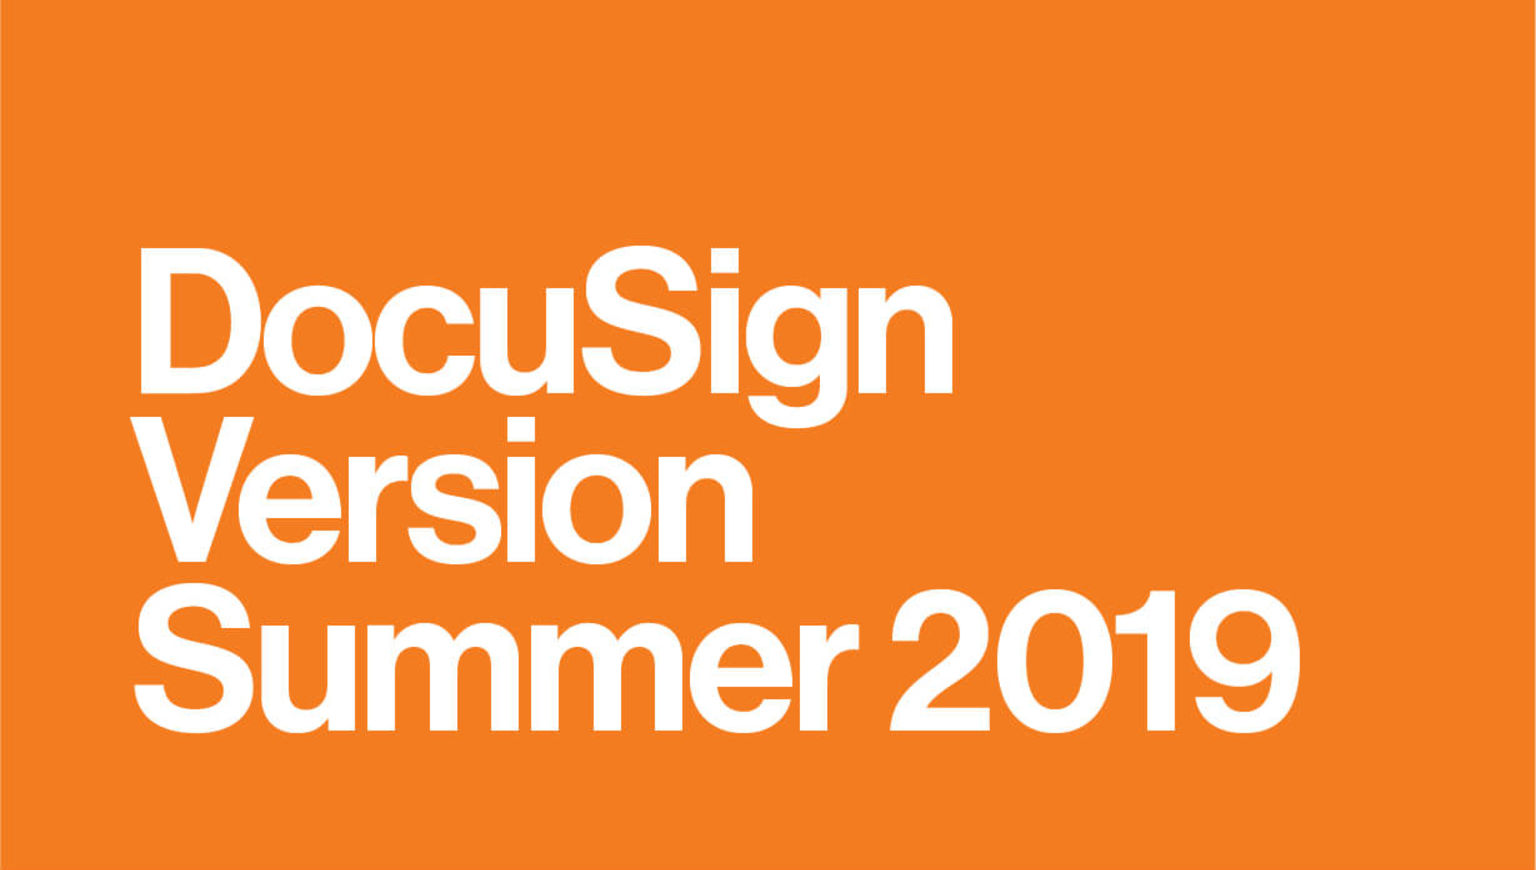 DocuSign Version Summer 2019